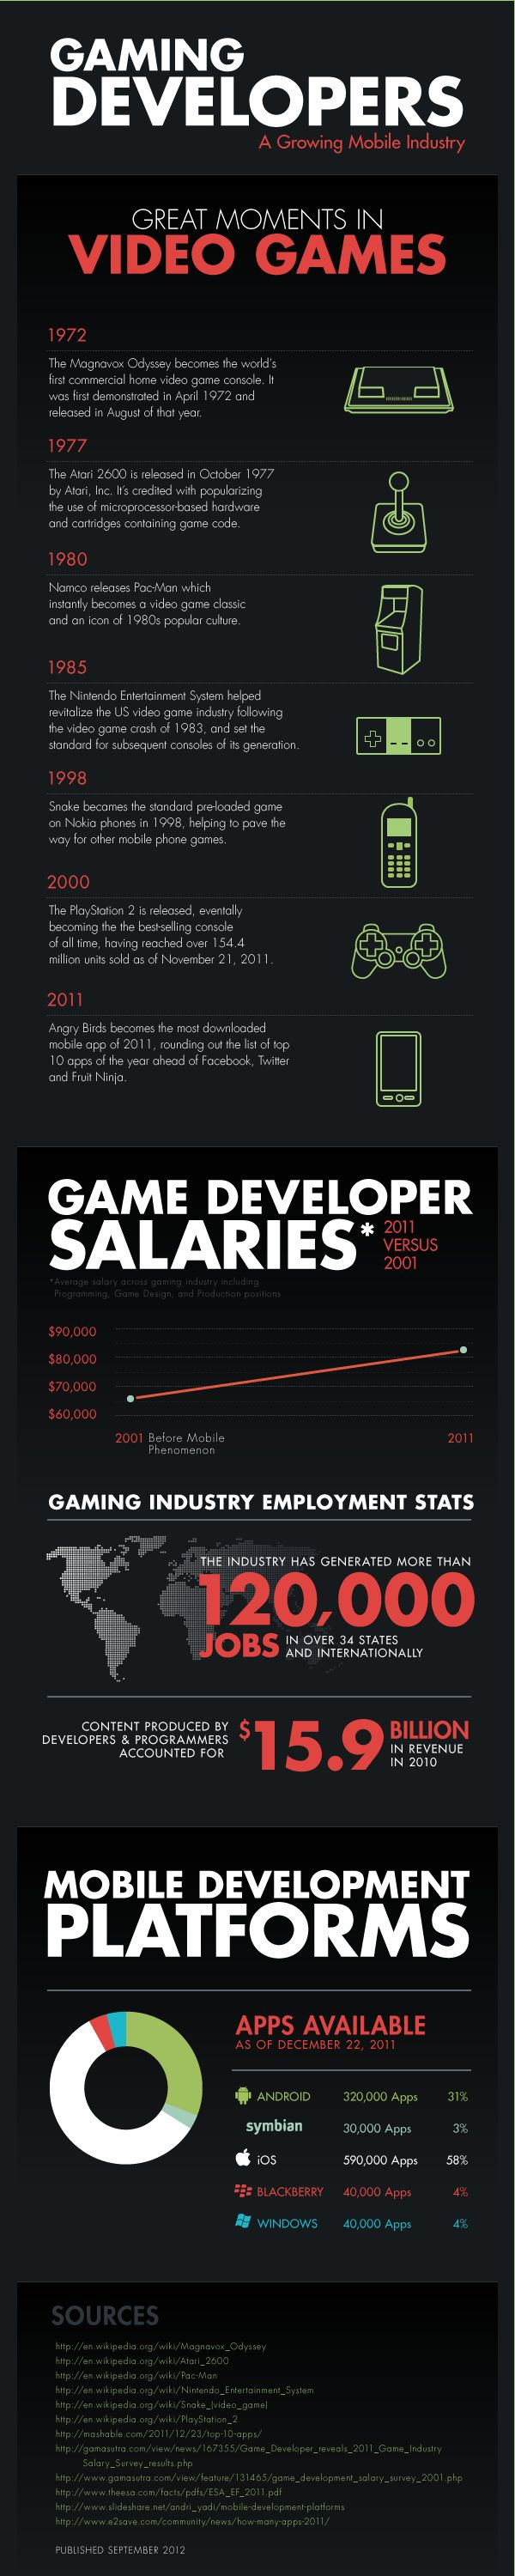 At first I thought this only included the first set of statistics, but then I found three more! A great way to show the history and career of gaming.